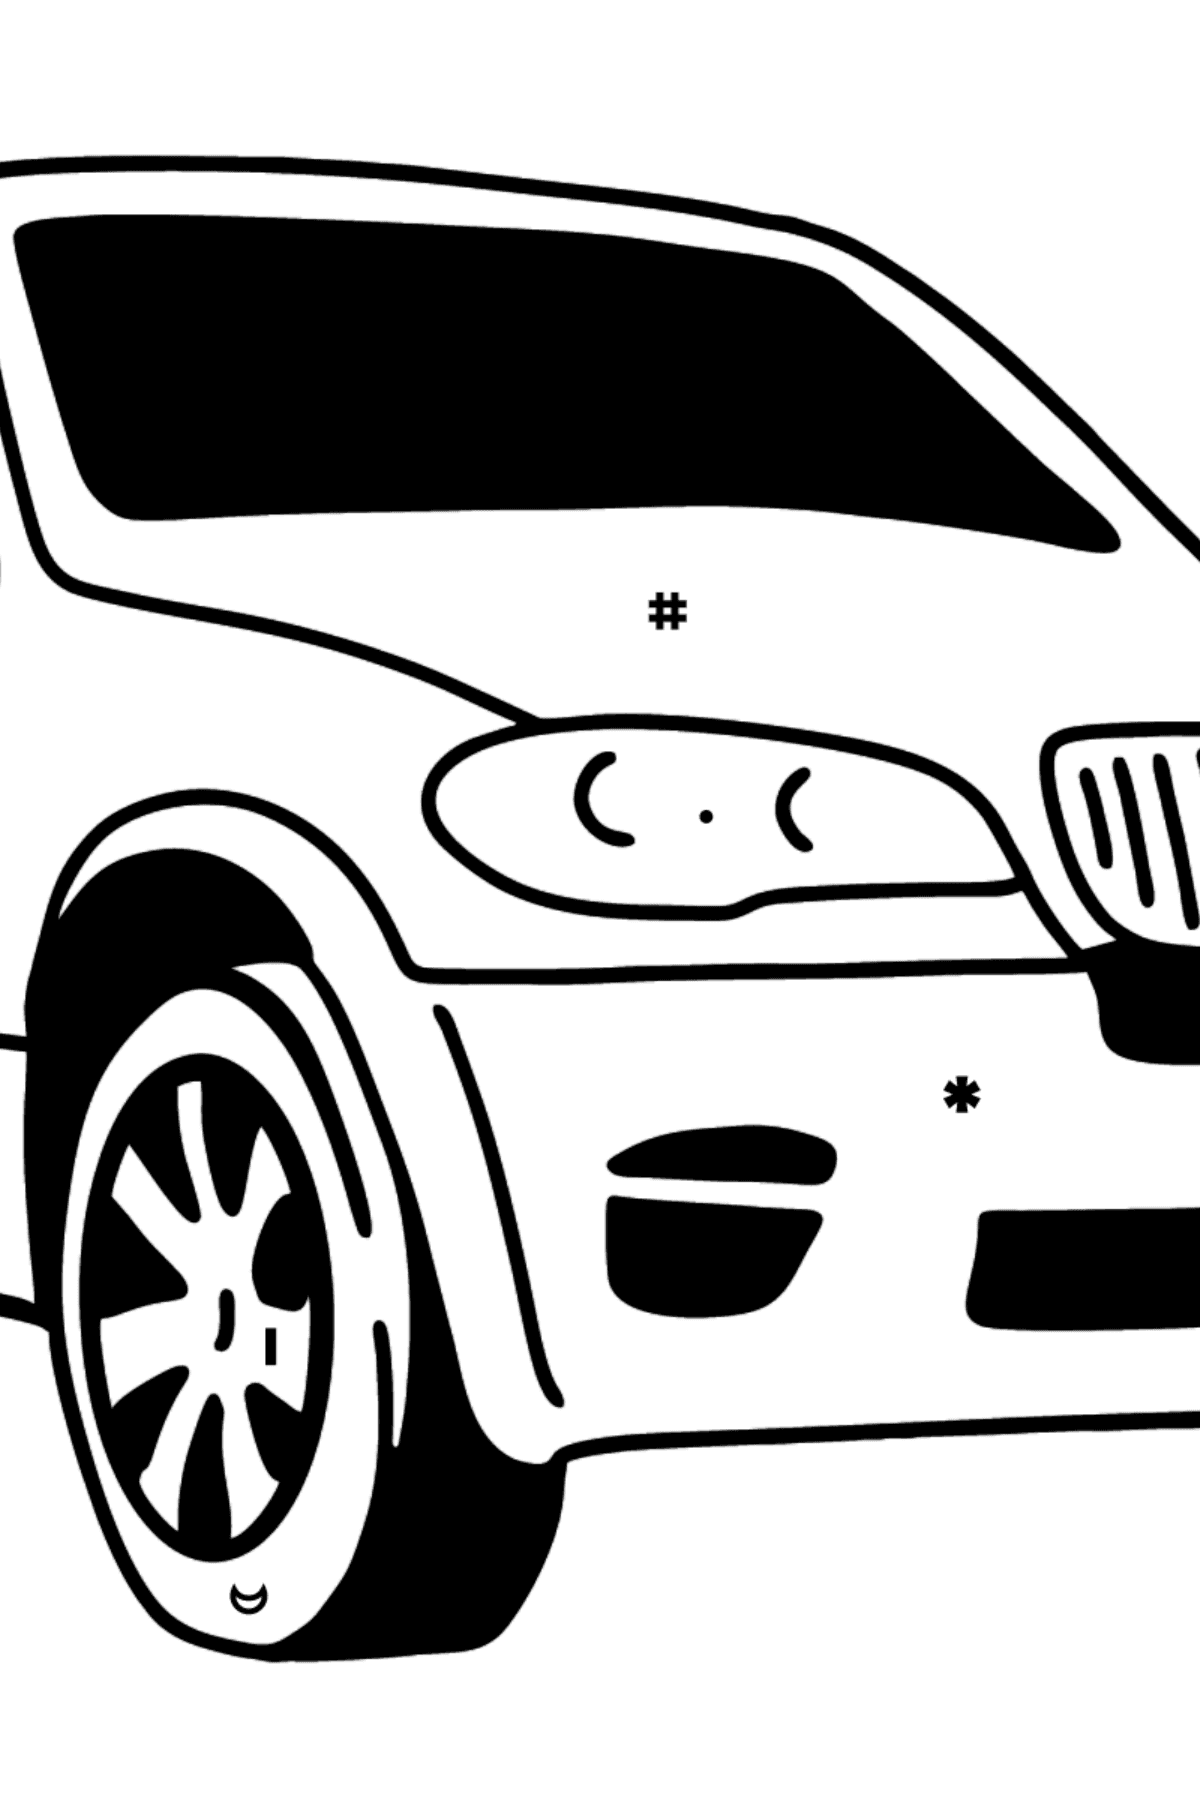 BMW X6 Crossover coloring page - Coloring by Symbols for Kids